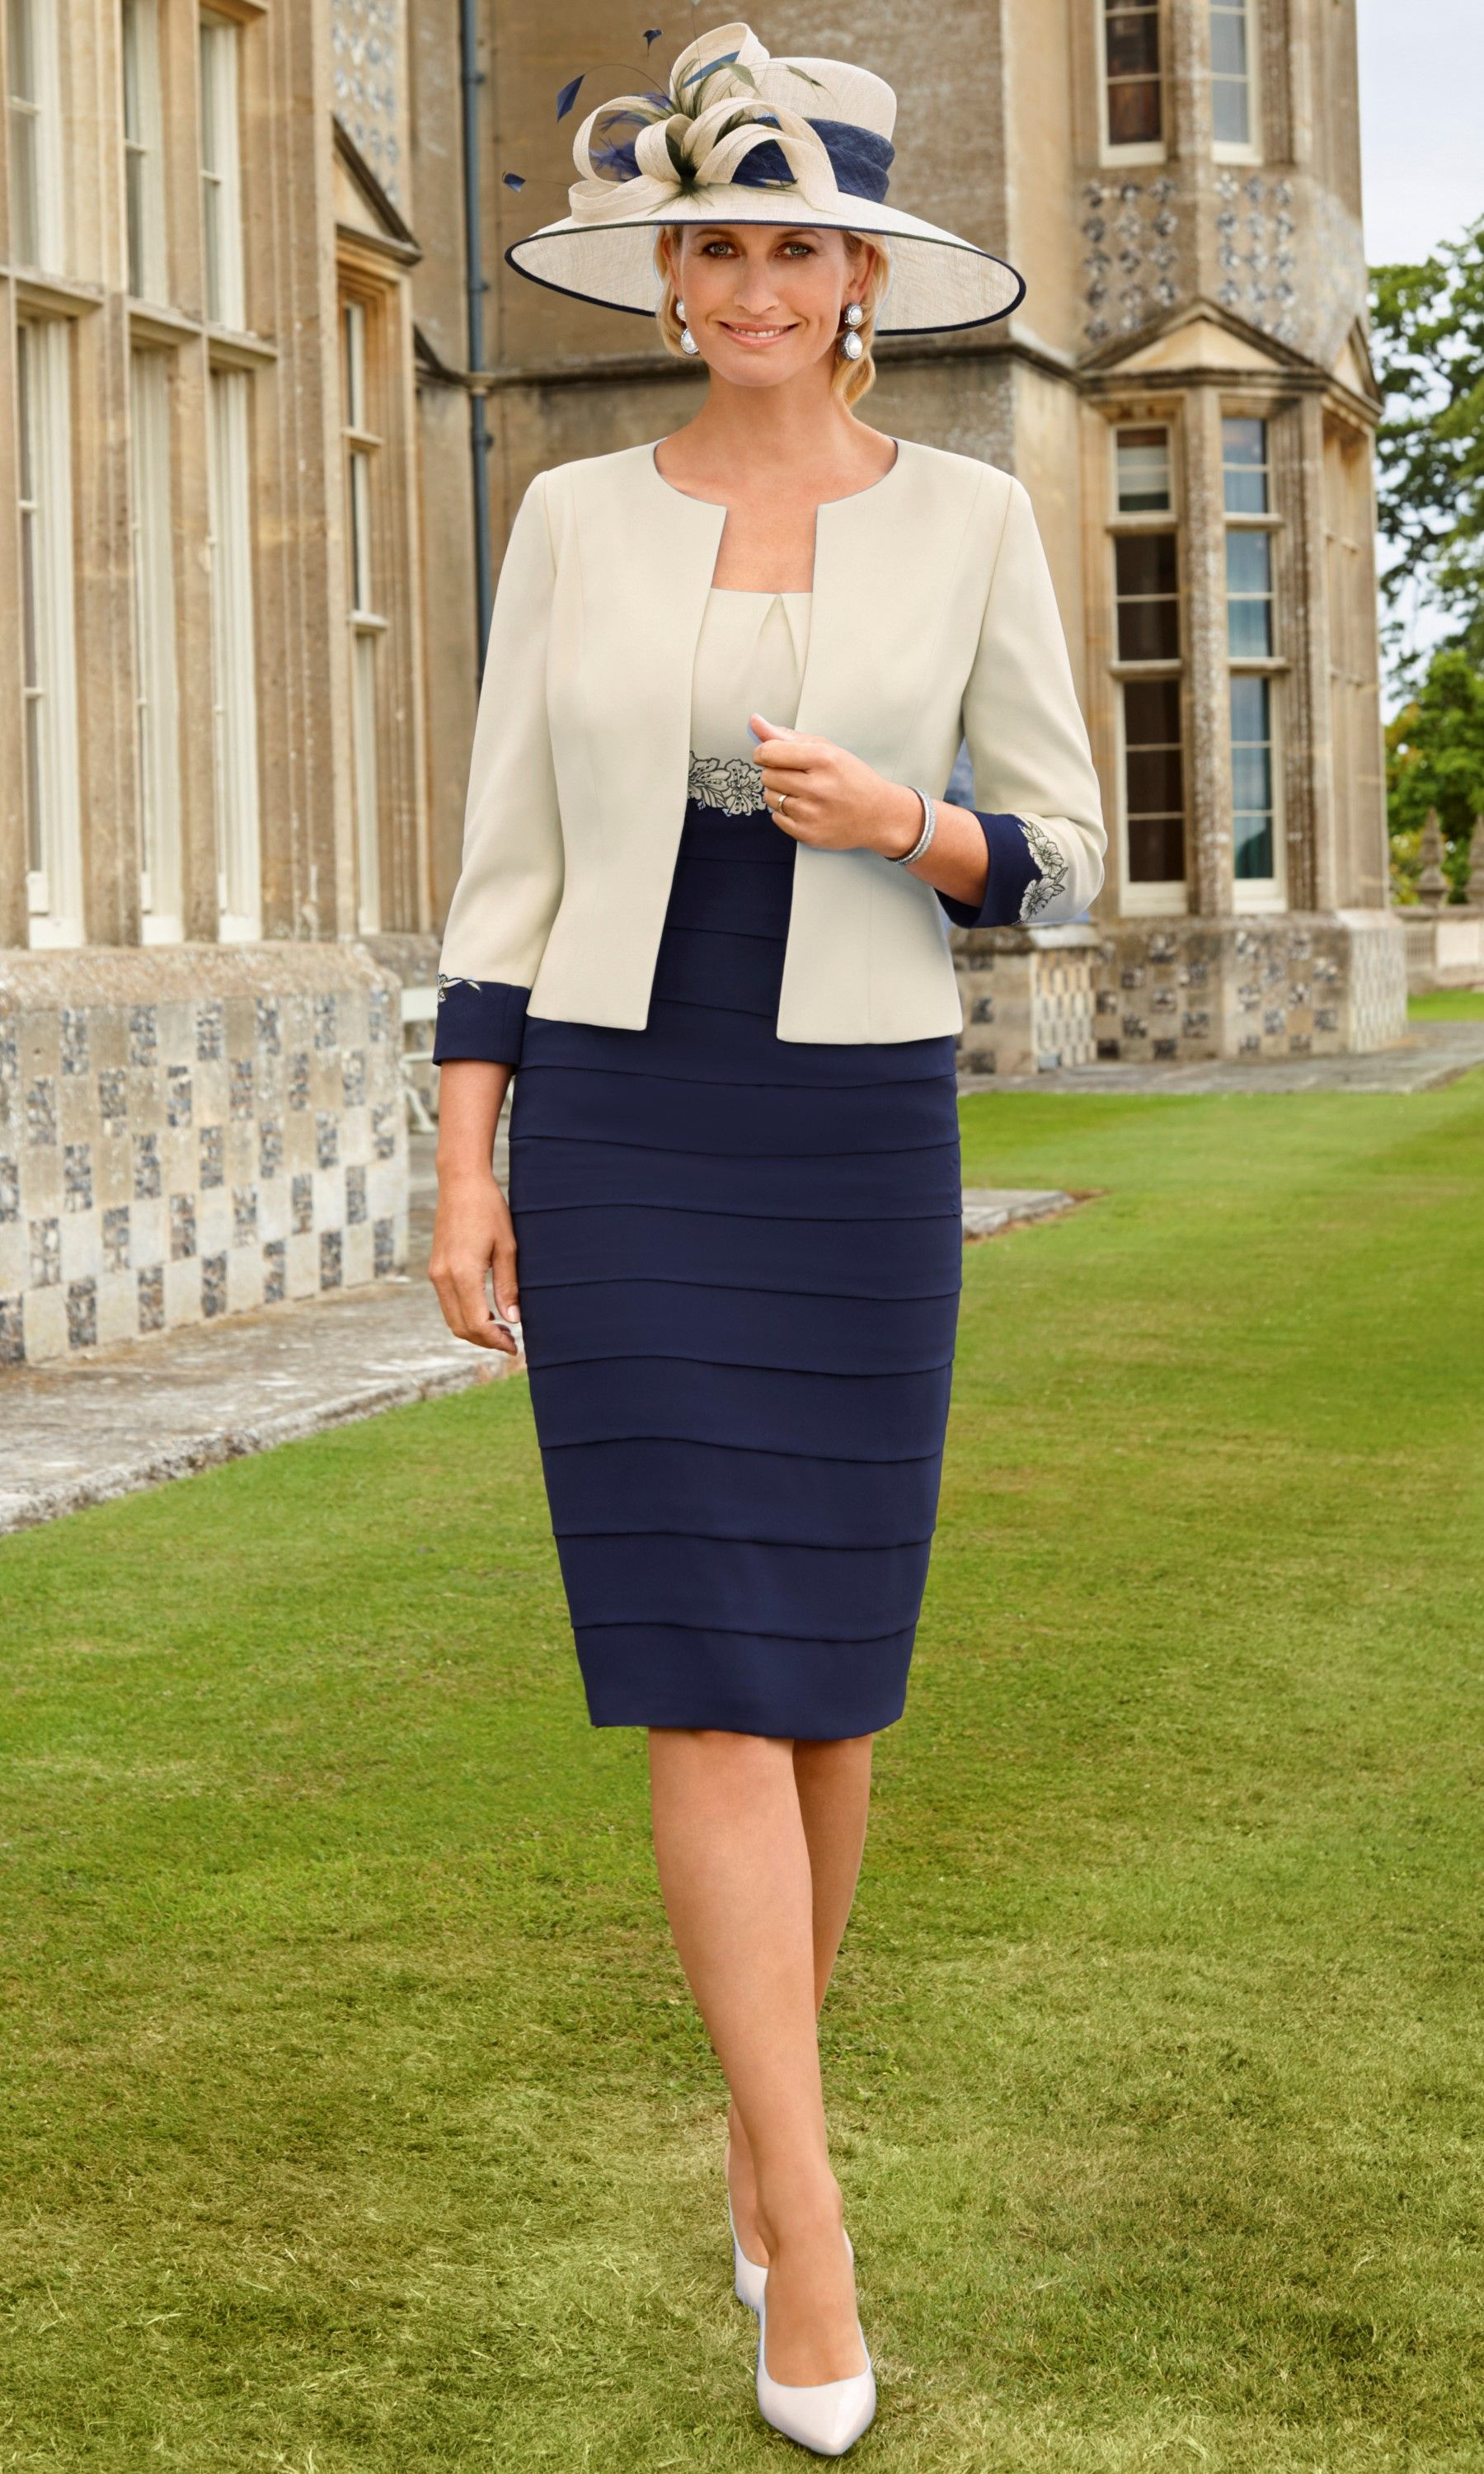 Condici Mother of the Bride Outfits 2017 - Bournemouth Dorset ...